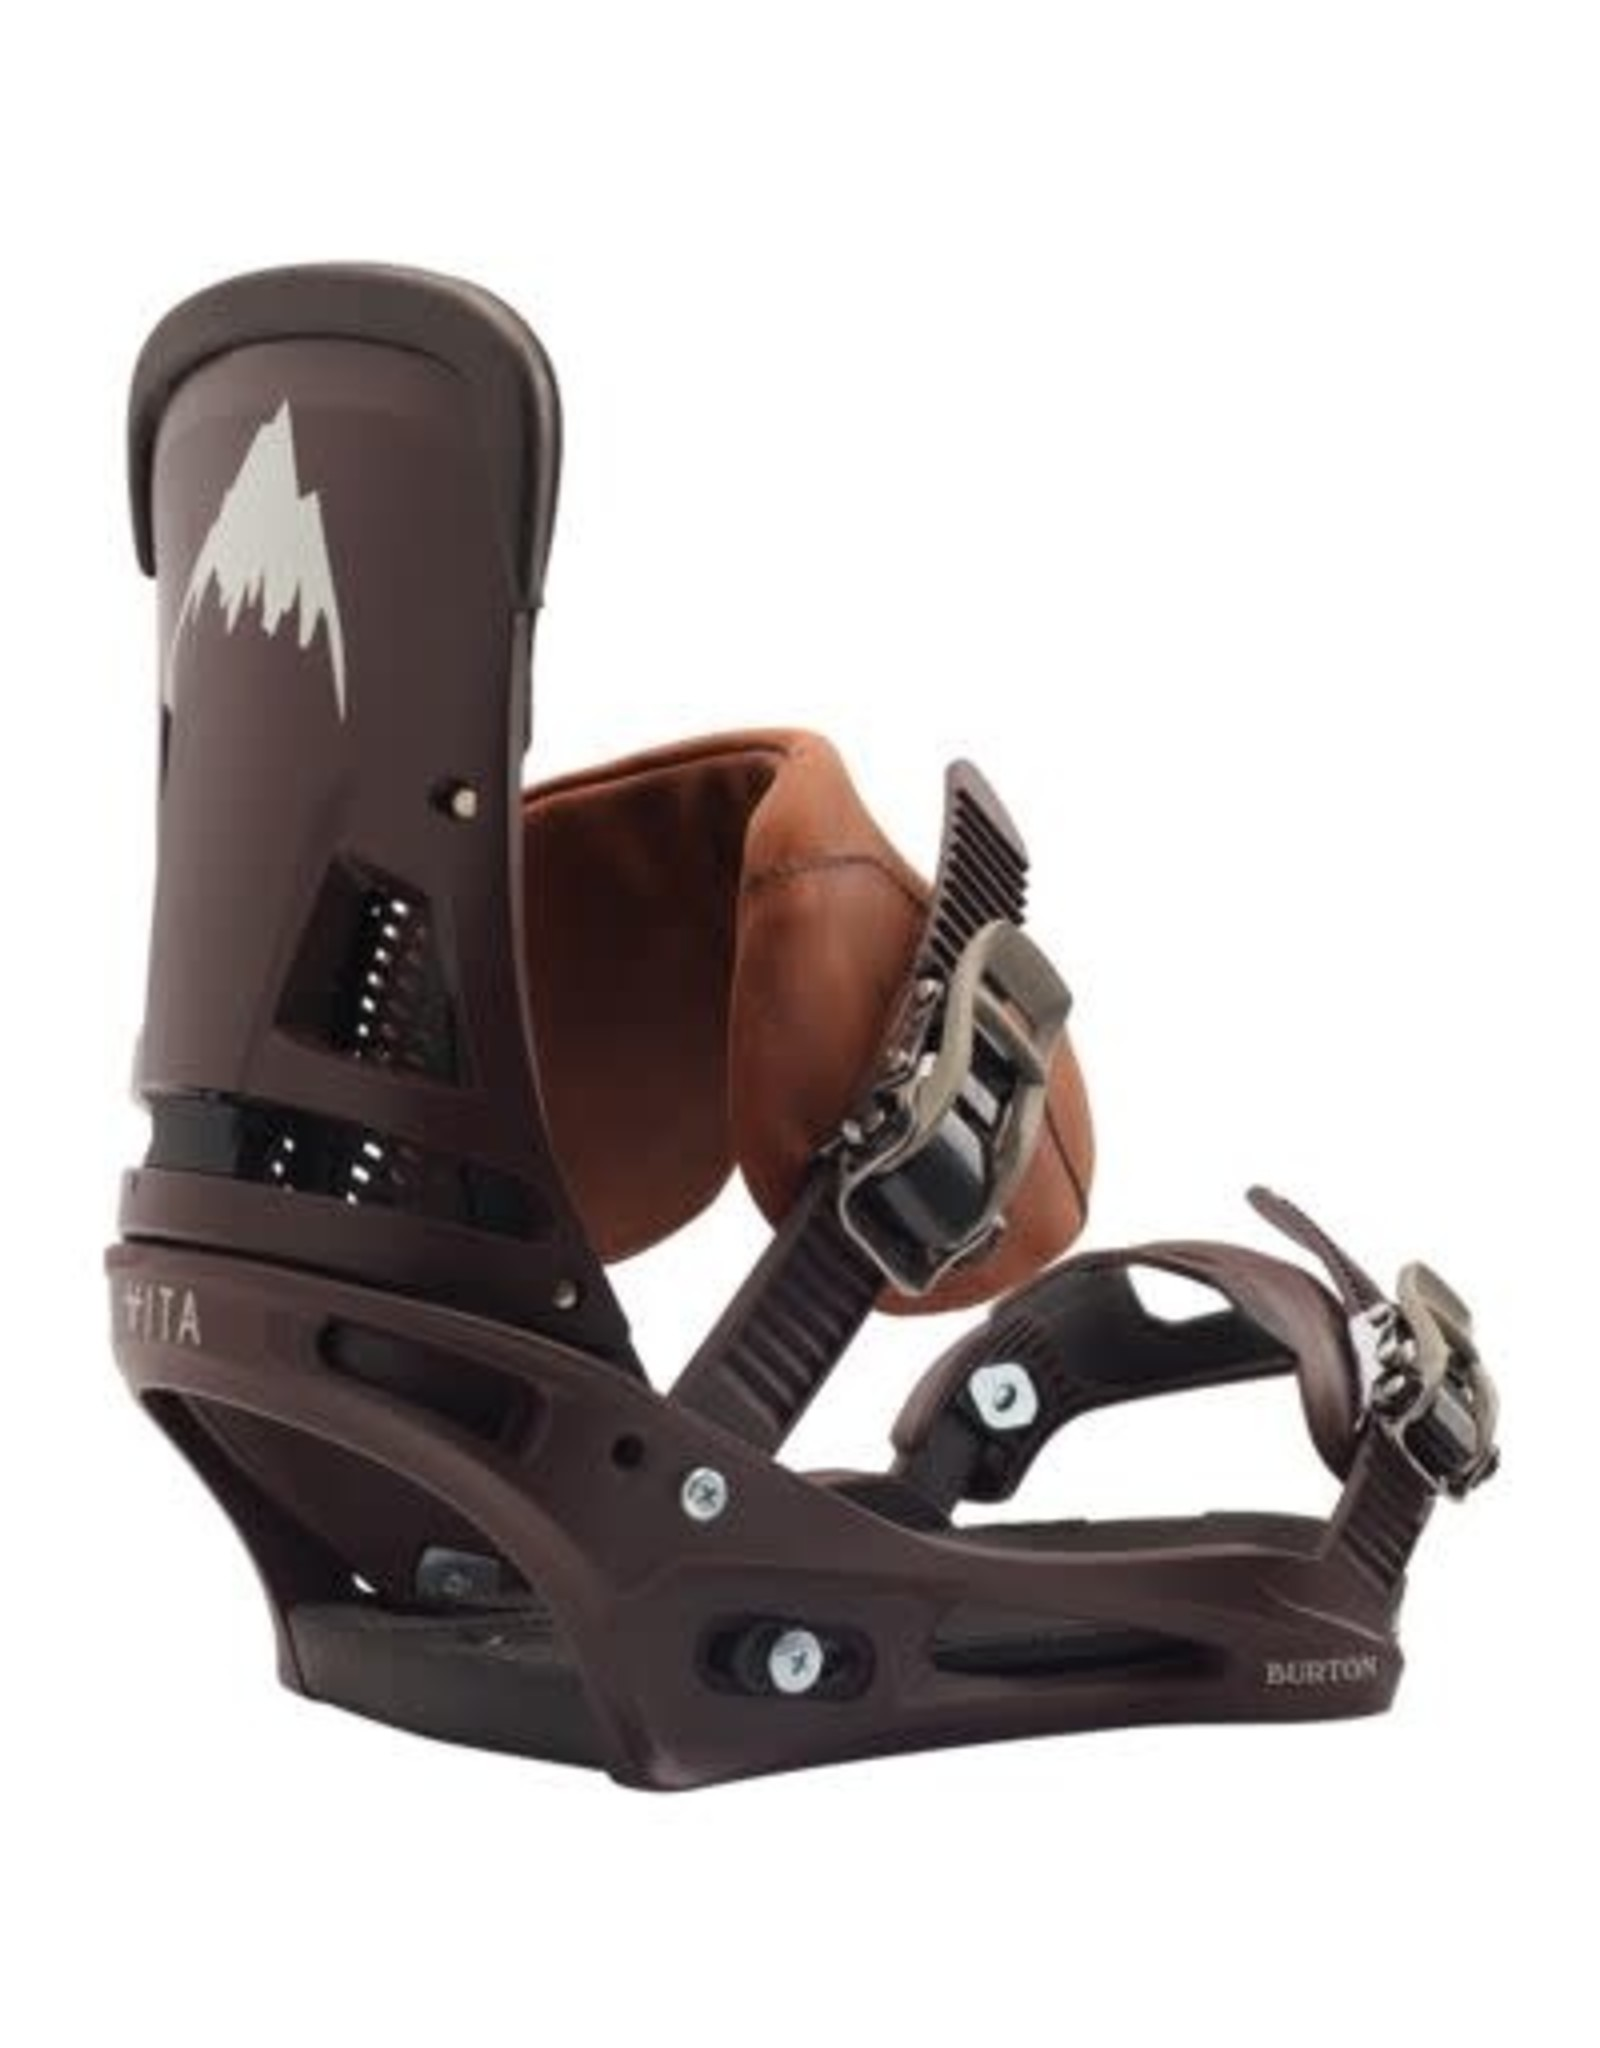 Burton Men's  Malavita Re:Flex Leather Snowboard Binding